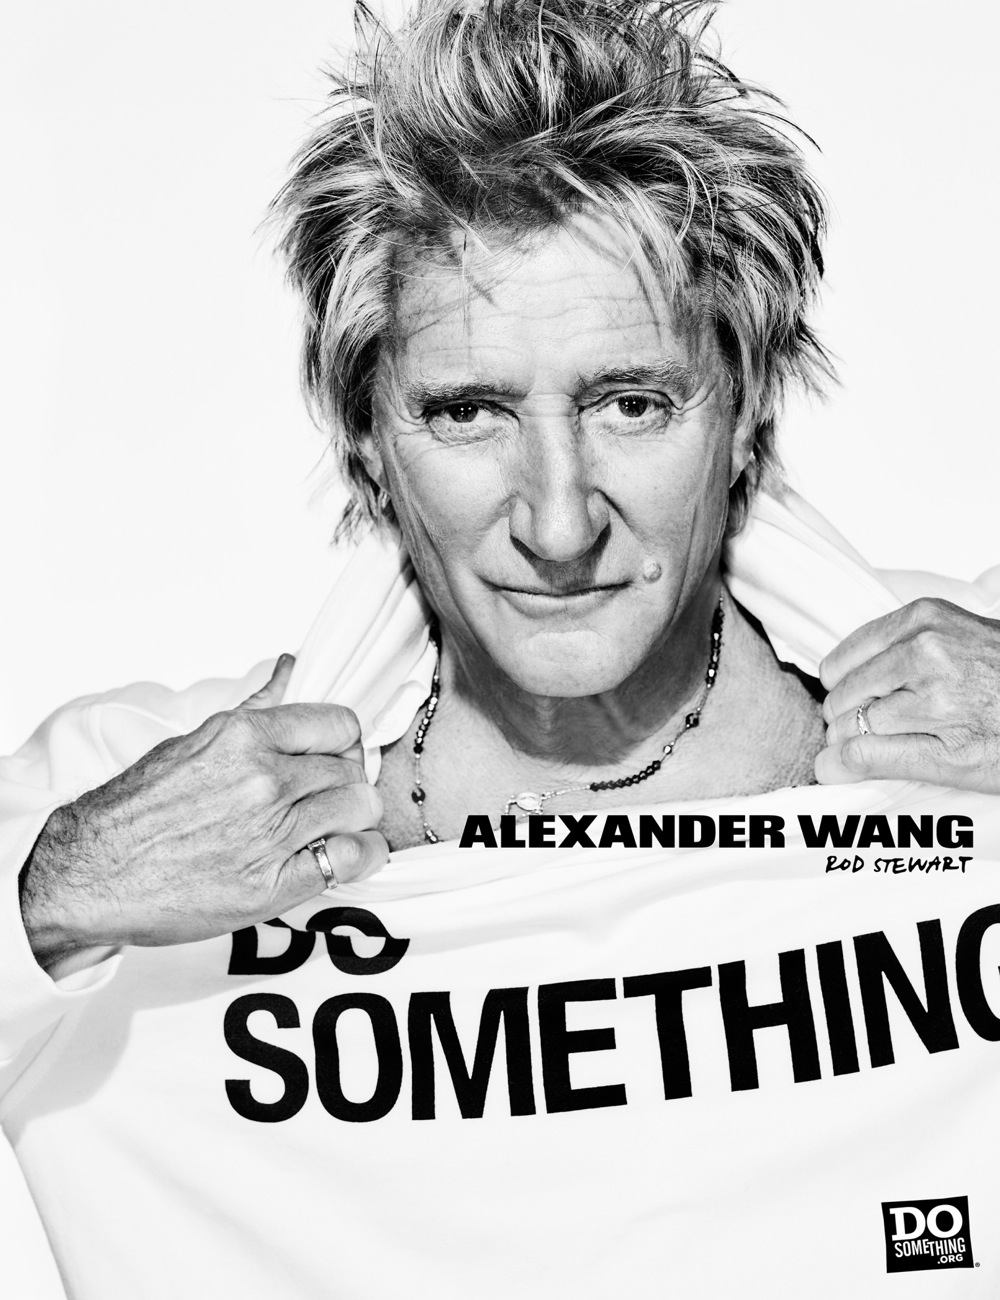 Rod Stewart wears Alexander Wang x DoSomething